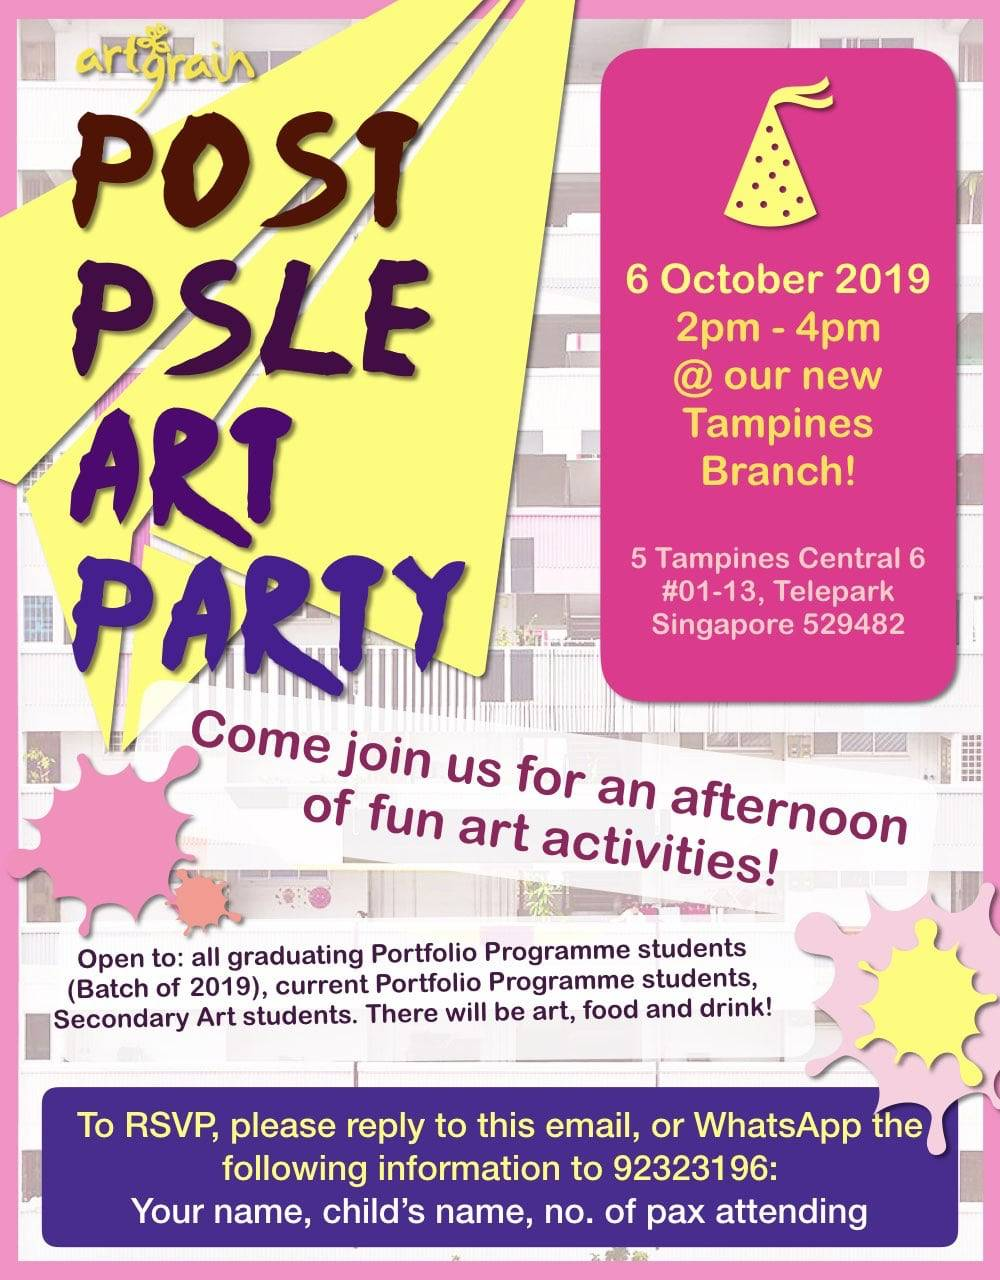 Post-PSLE Party – 6 October 2019